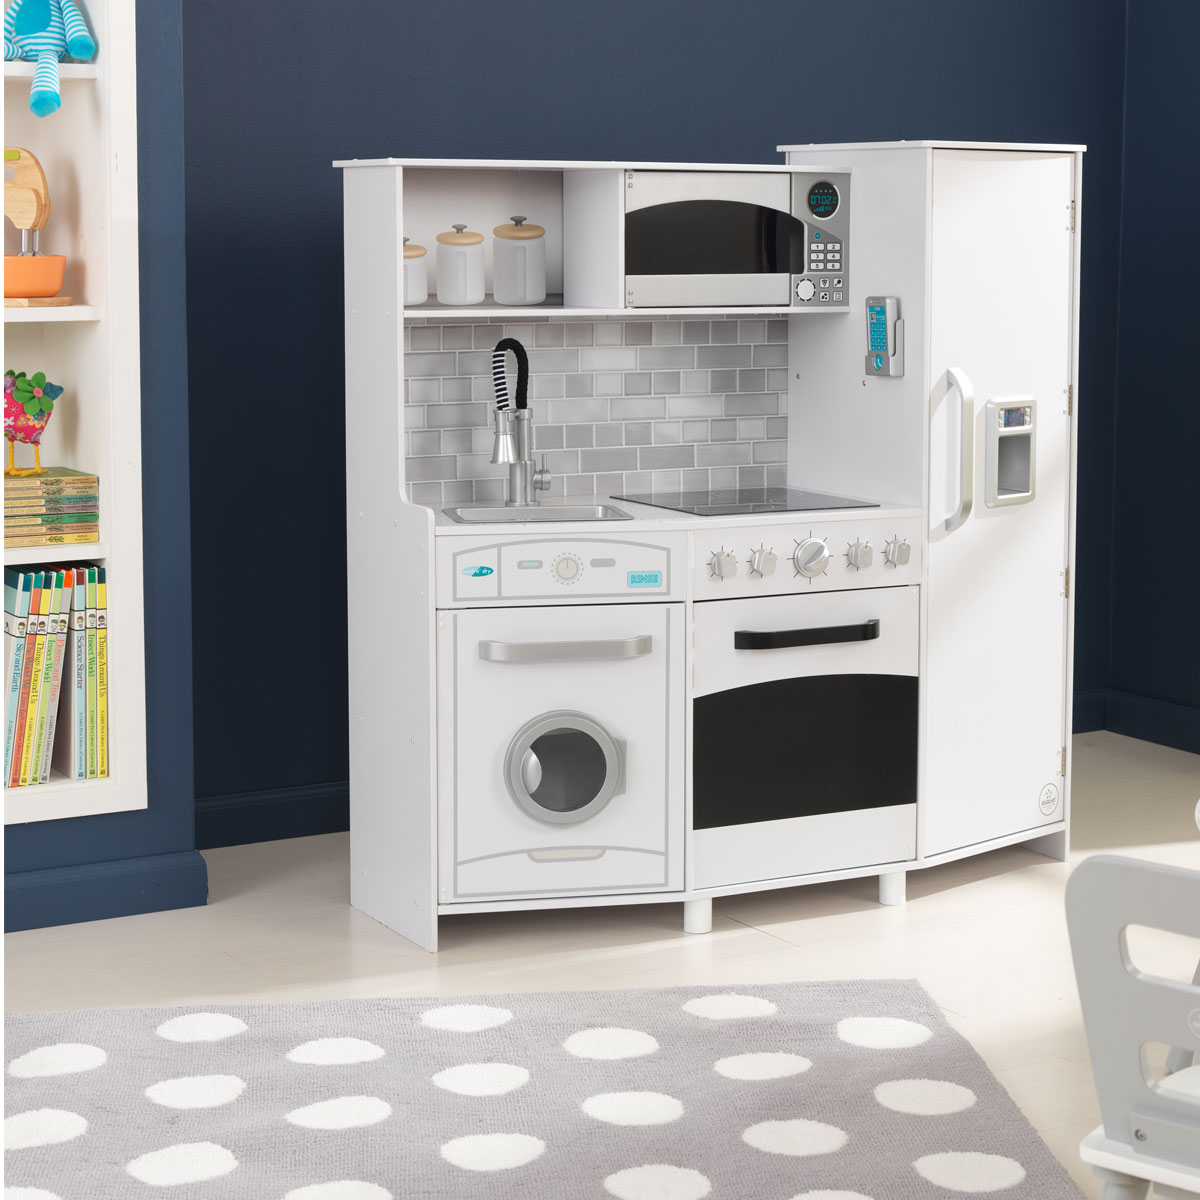 Large Play Kitchen: Kidkraft Large Play Kitchen